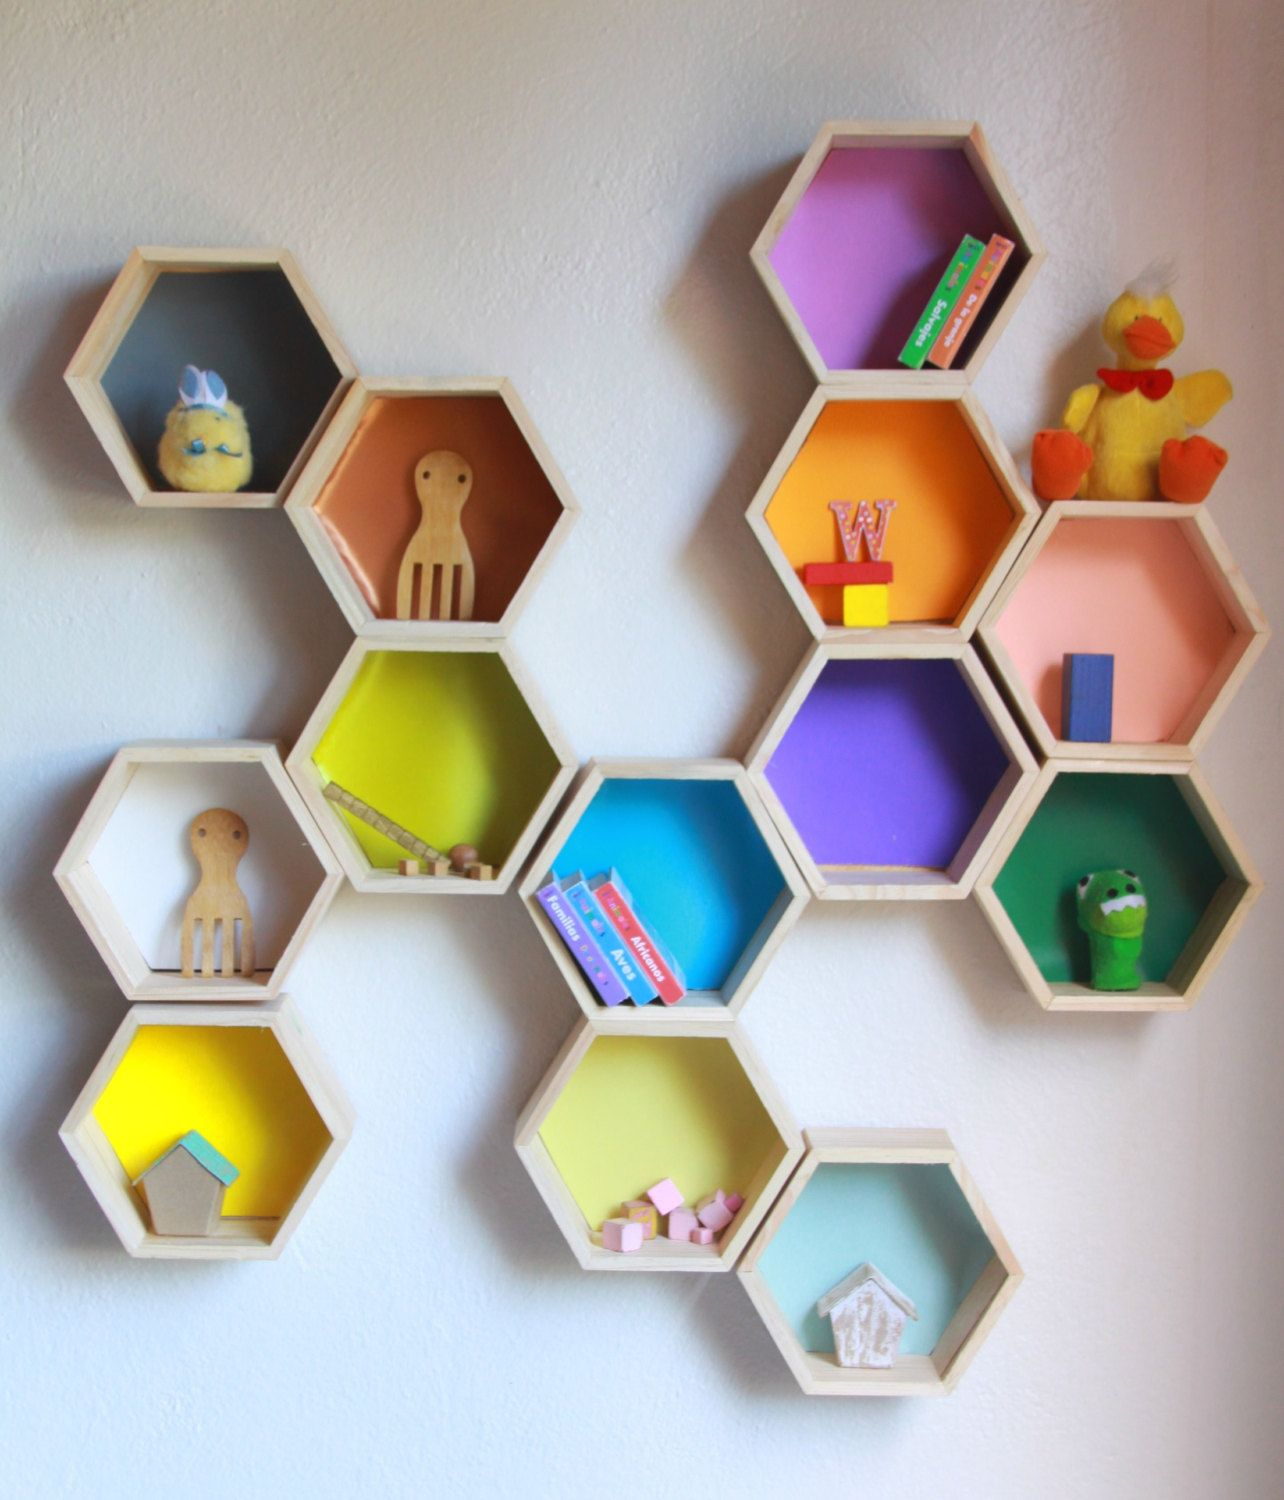 Five Hexagon Shelves Hexagon Shelf Color Shelves Kids Shelves Small Shelves Wood Shelves By Folkloredeco 70 00 Geometric Shelves Hexagon Shelves Kids Shelves